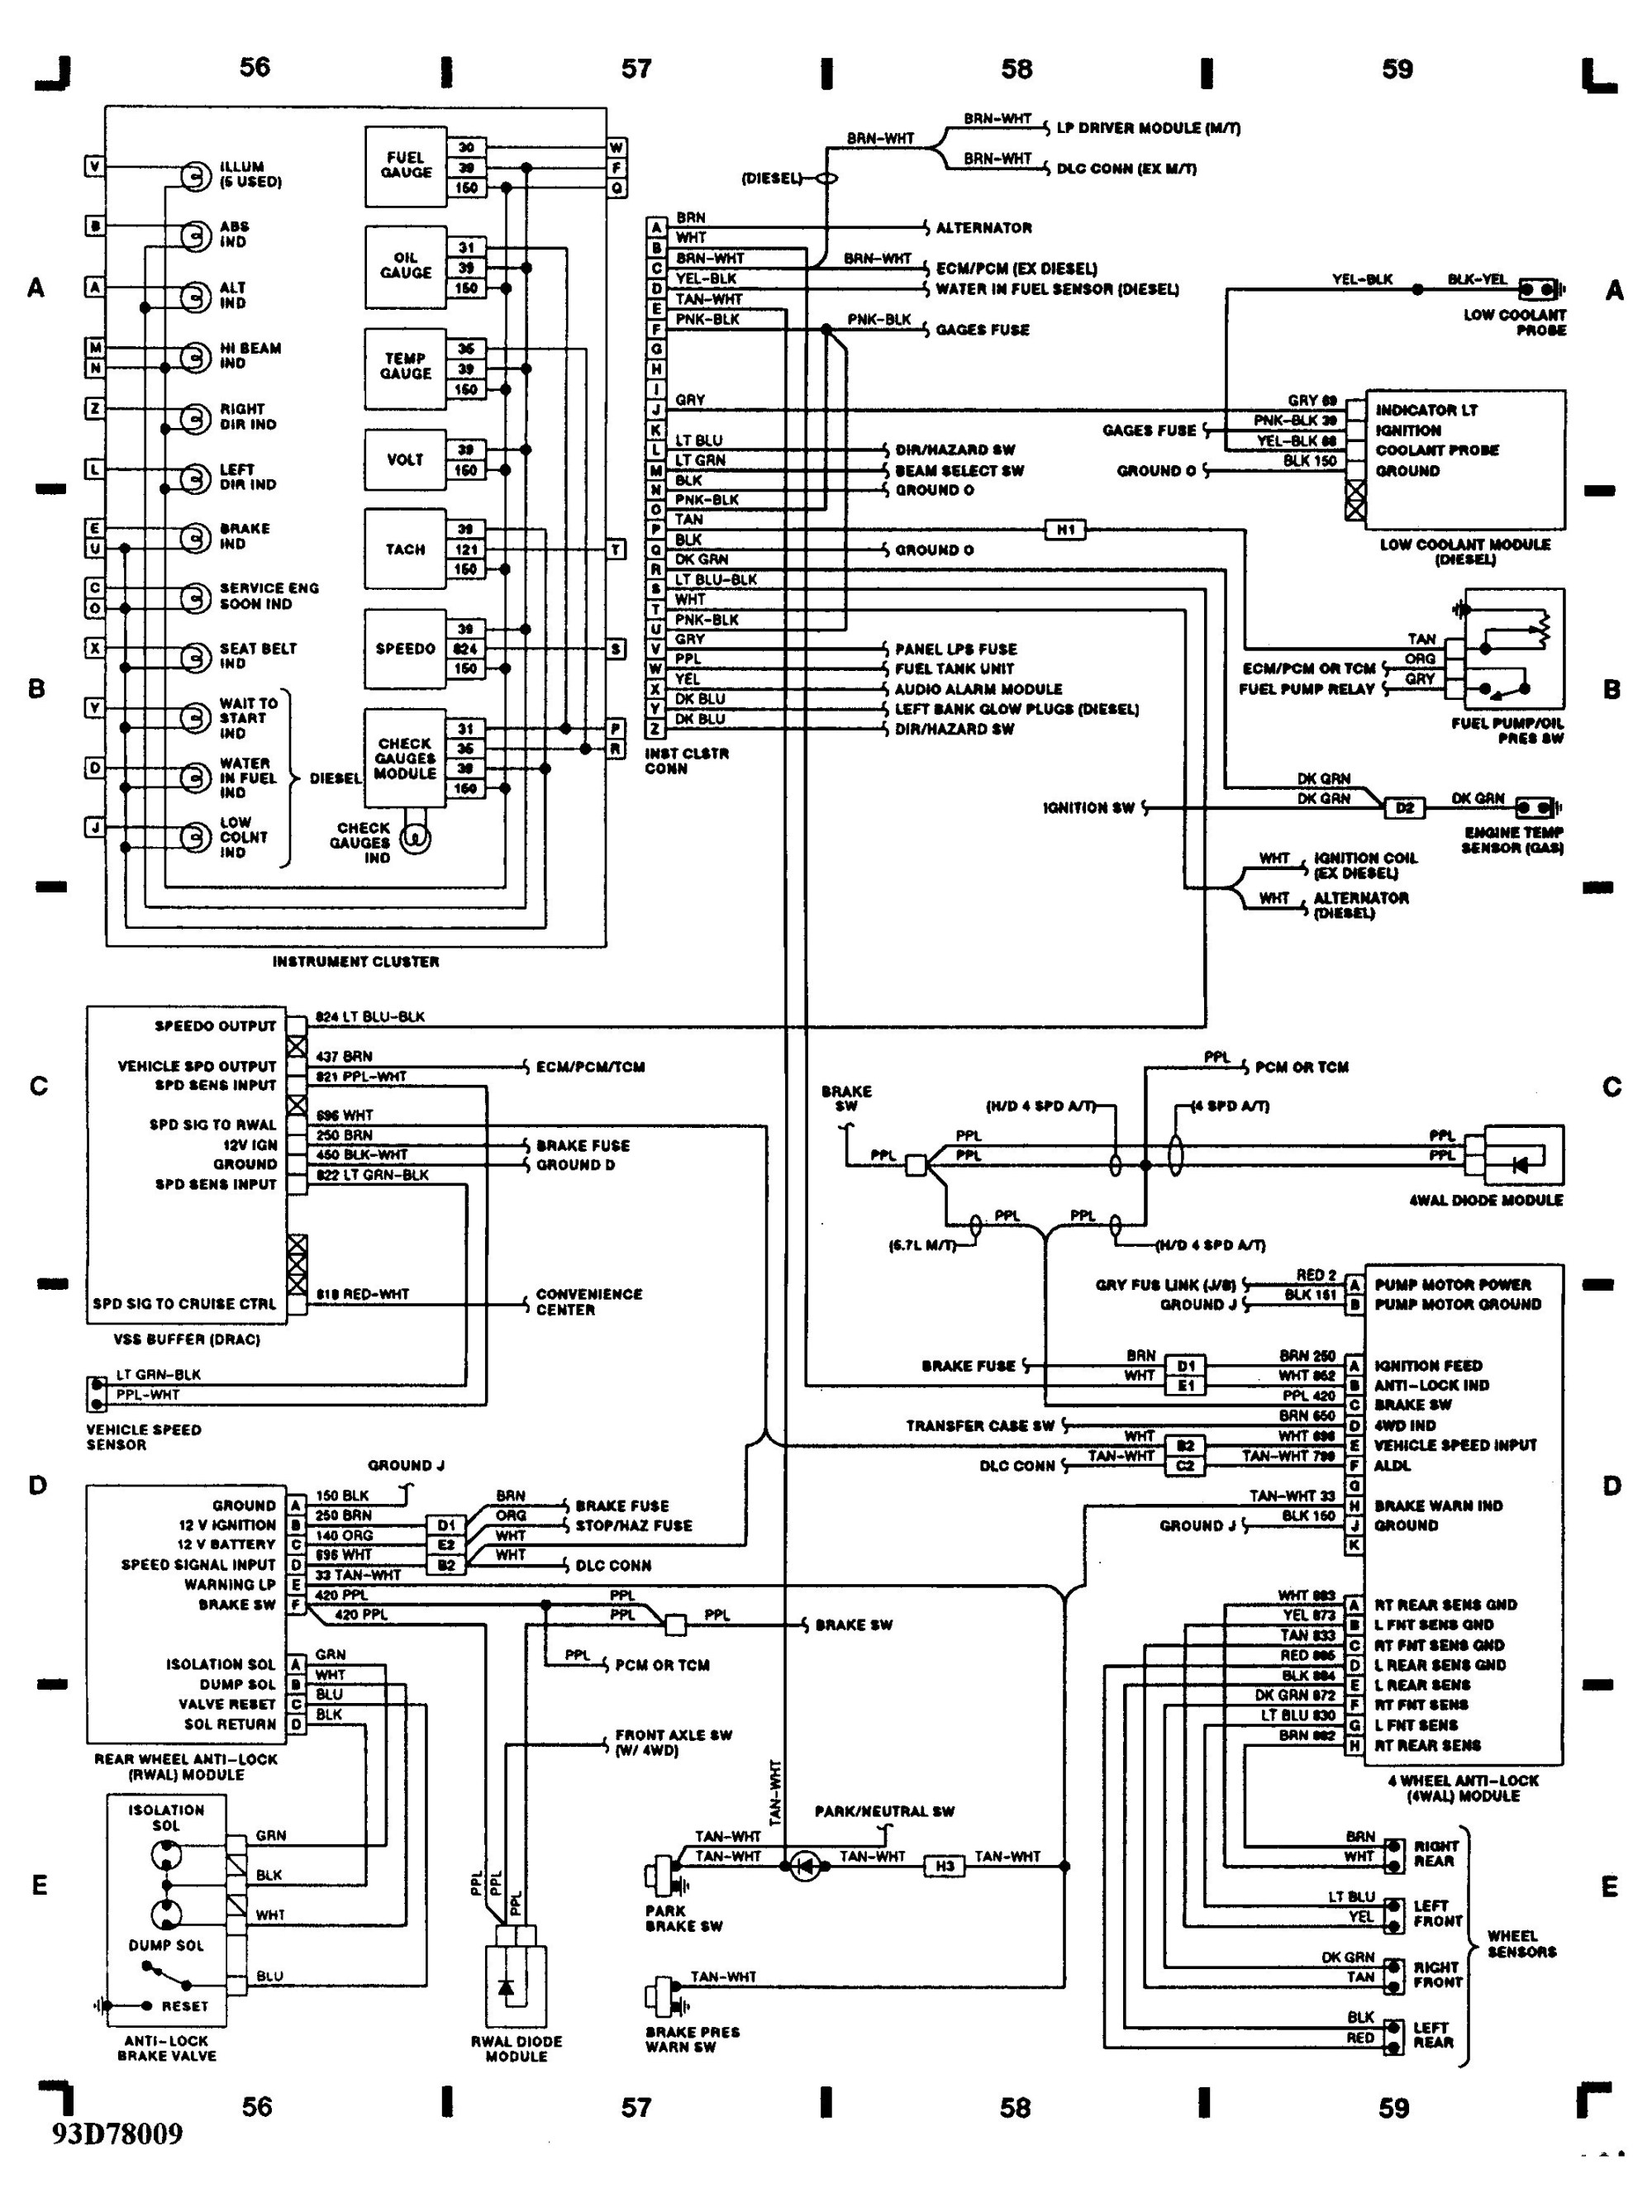 hight resolution of 1997 chevy 5 7 ignition wiring diagram wiring diagram 1997 chevy tahoe 5 7 ignition coil on ignition coil pack wiring